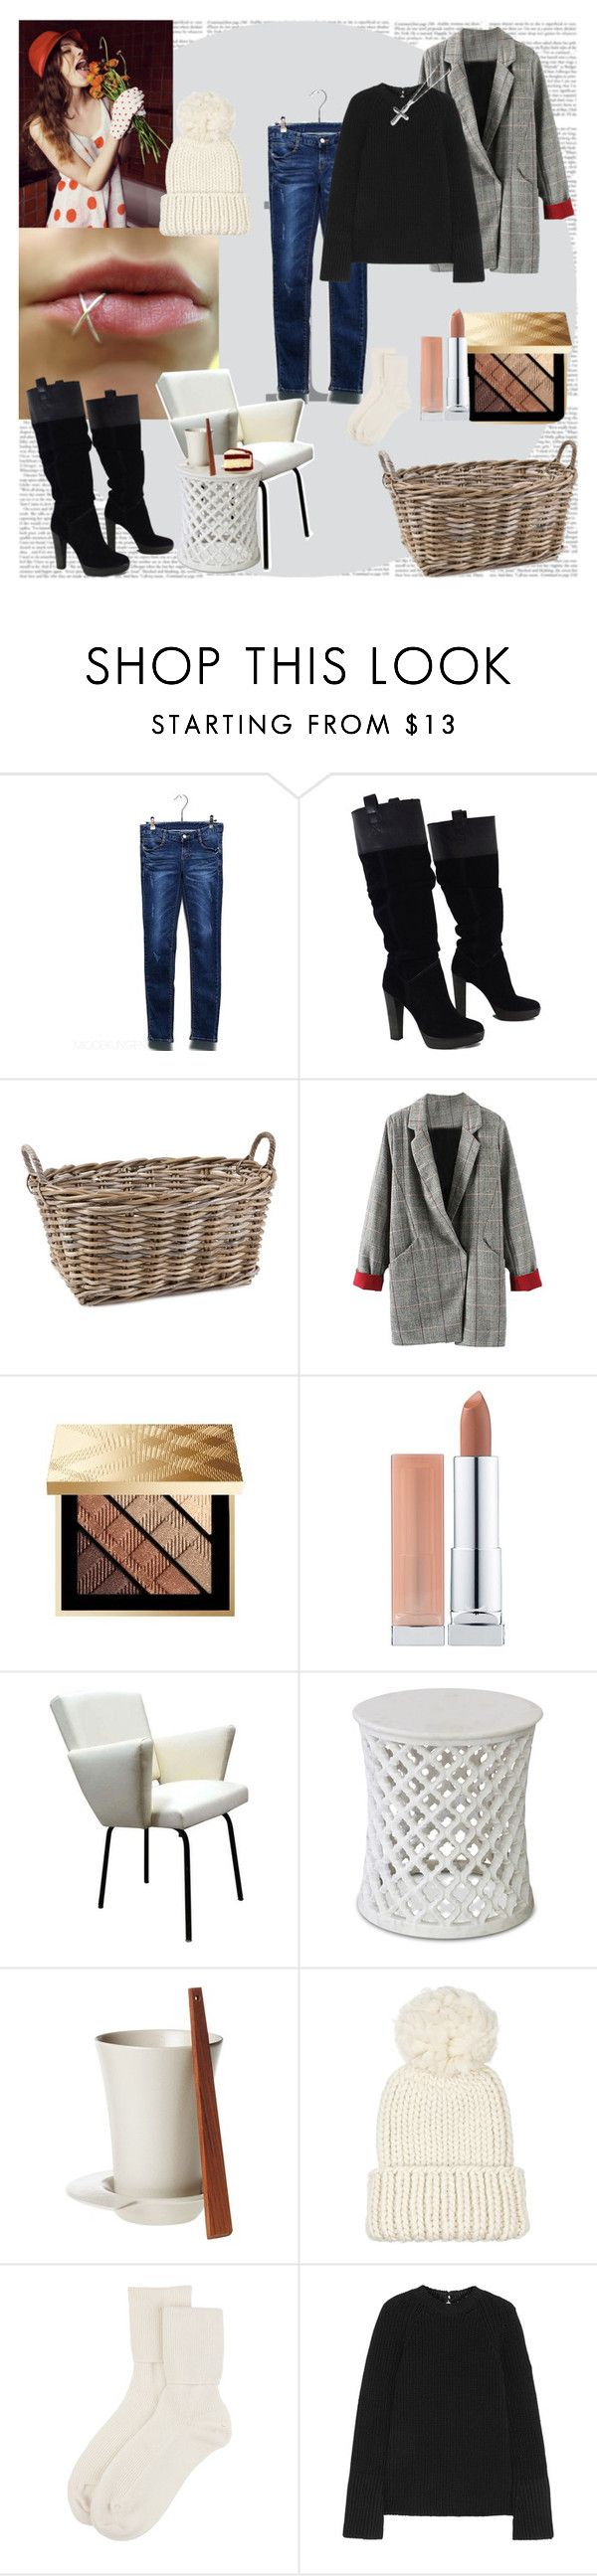 """Exit"" by black-wings ❤ liked on Polyvore featuring BCBGMAXAZRIA, Wildfox, Zara Home, Burberry, Maybelline, Design House Stockholm, Eugenia Kim, Johnstons of Elgin, Rochas and Kevin Jewelers"